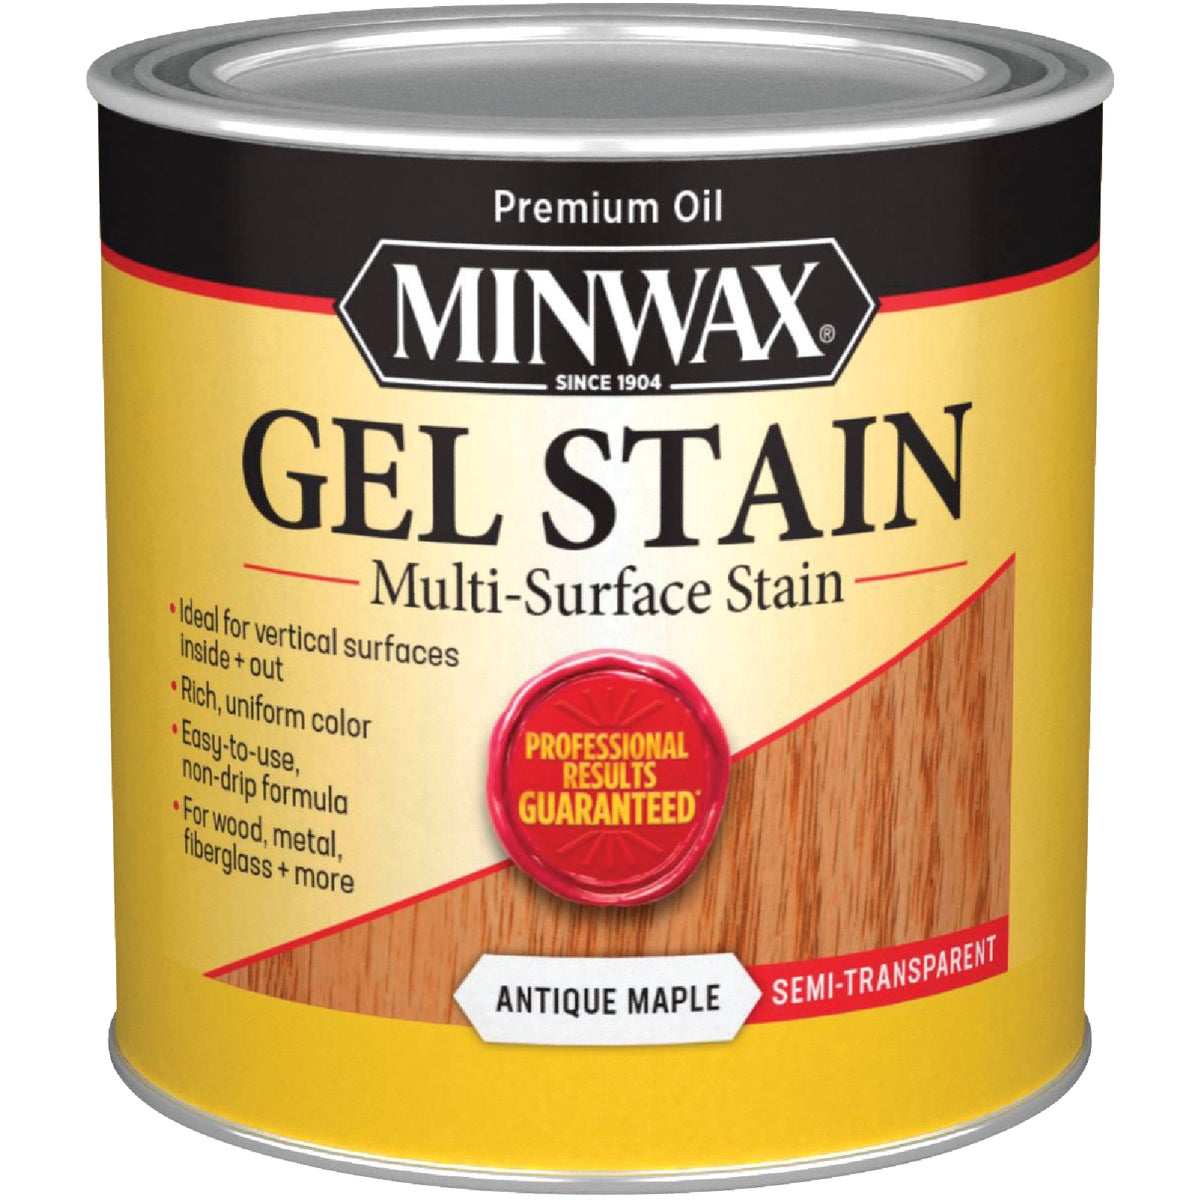 ANTIQUE MAPLE GEL STAIN - 260304444 by Minwax Company